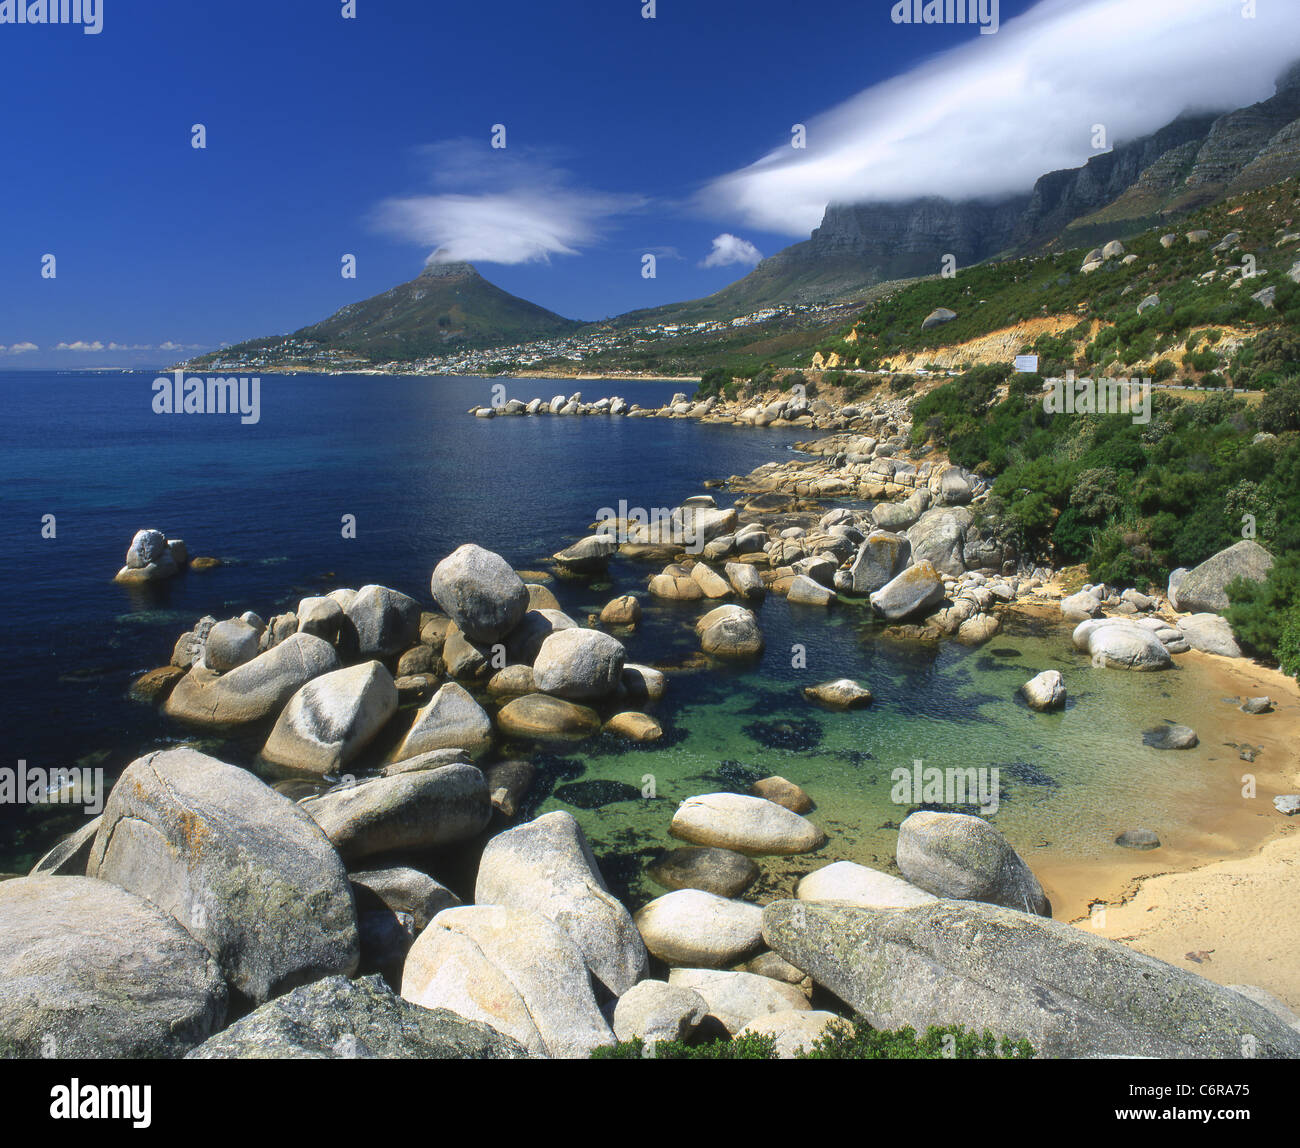 Rocky coastline at Oude Kraal beach - Stock Image